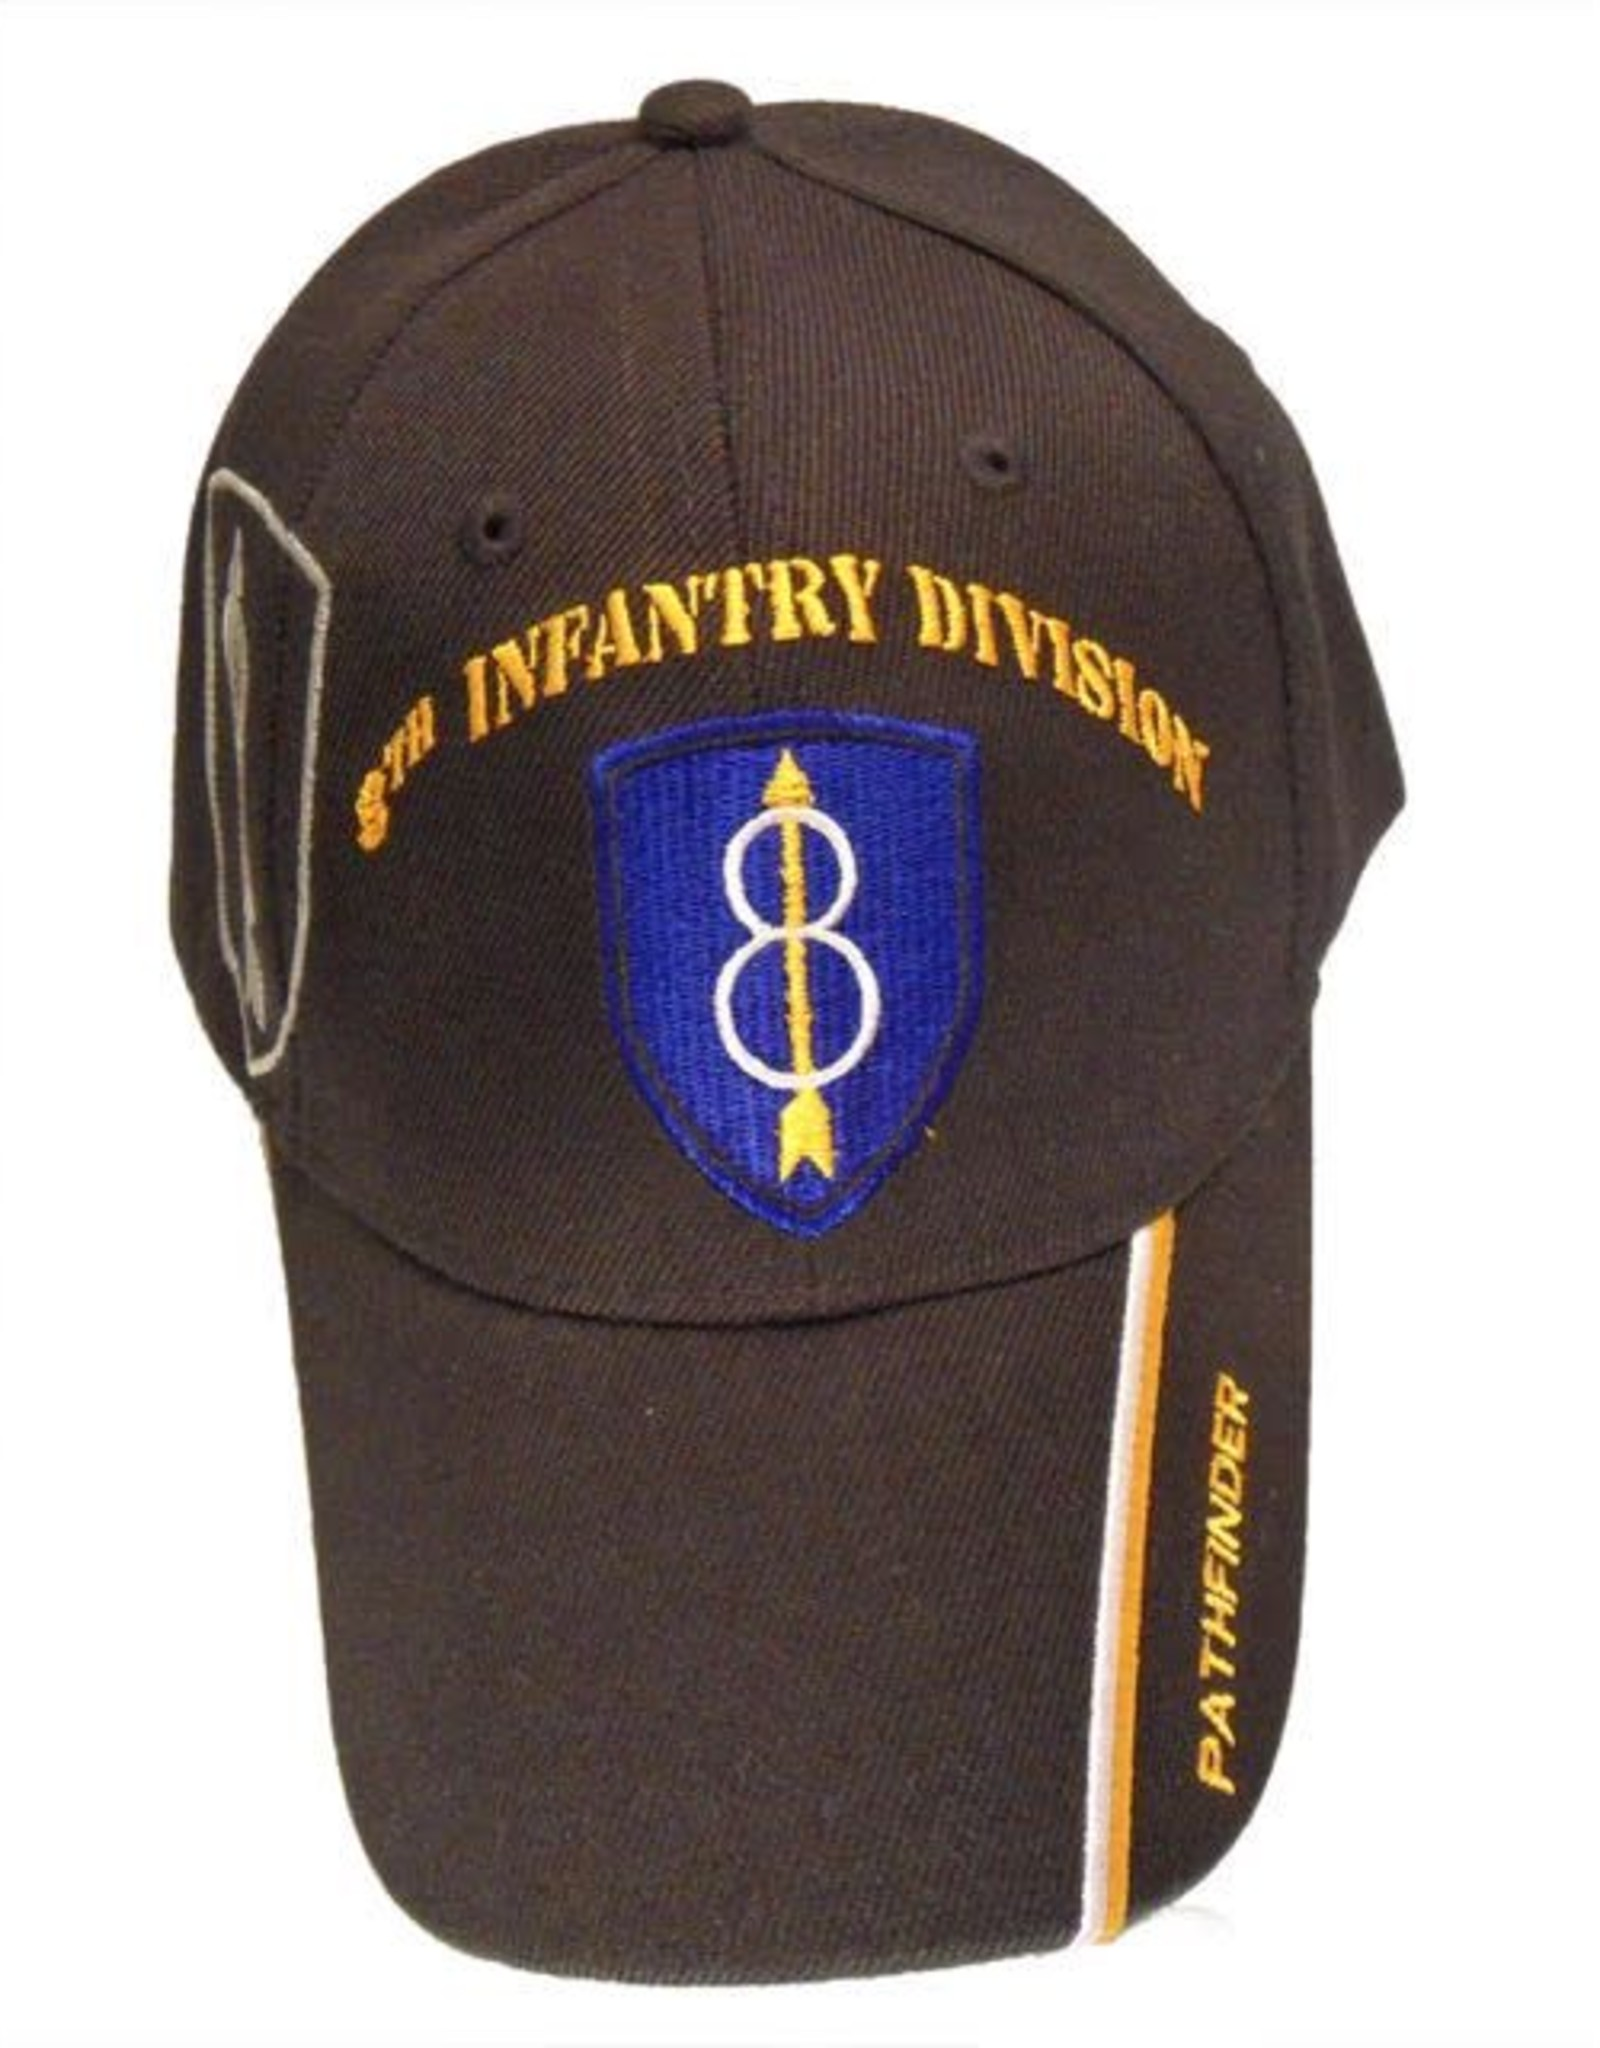 MidMil Army 8th Infantry Division Hat with Emblem, Motto and Shadow Black